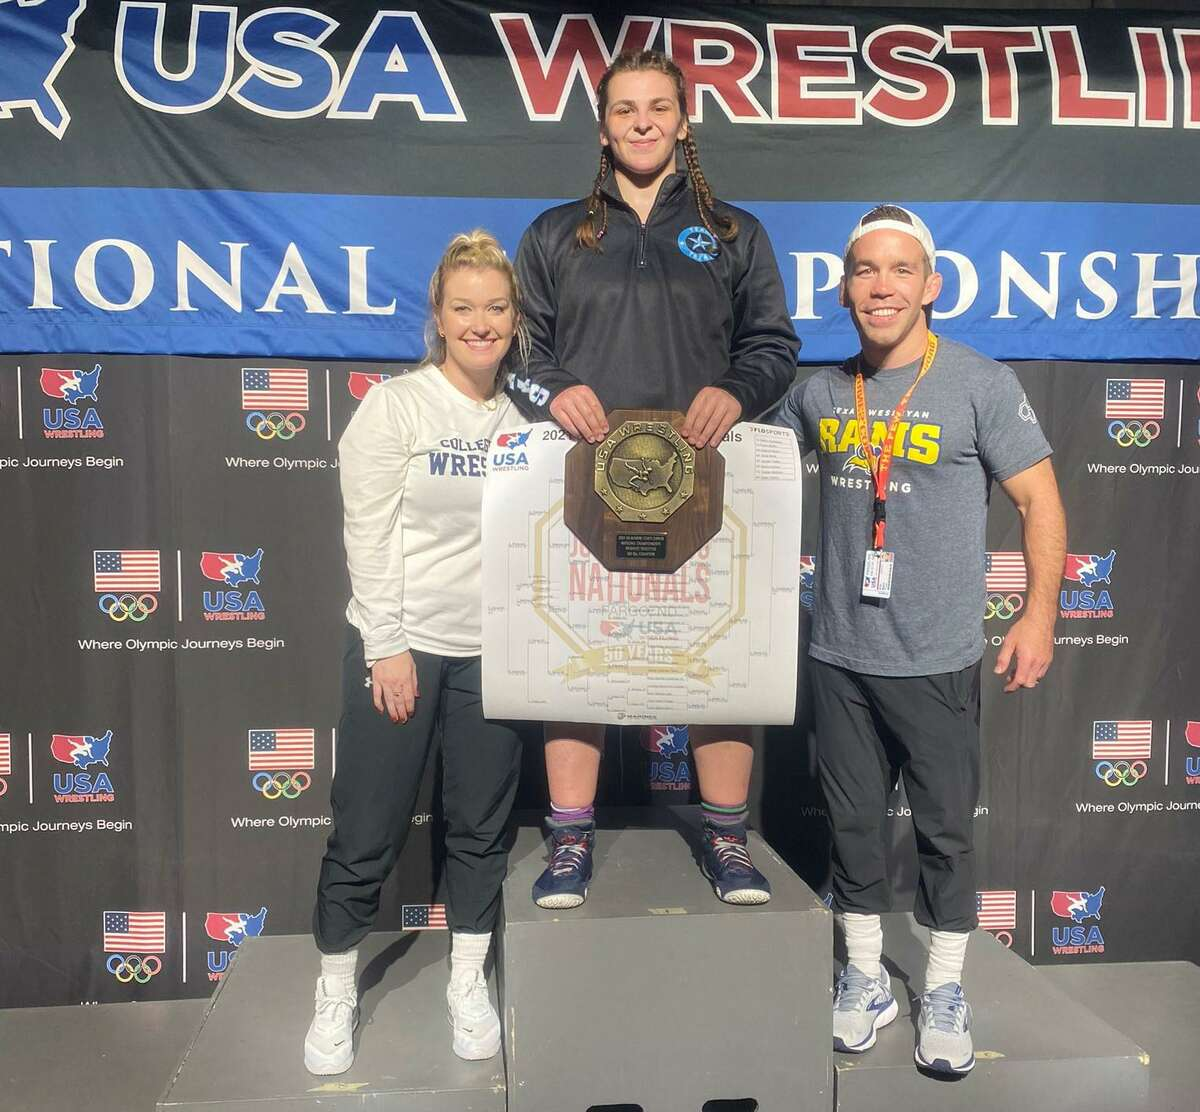 Recent College Park graduate Brittyn Corbishley won the 180 pound weight class at 2021 US Marine Corps Junior Nationals in Fargo, South Dakota on July 21, 2021. Corbishley is shown with College Park assistant coach Lindsey Spjut (left) and College Park head coach Erik Spjut (right).